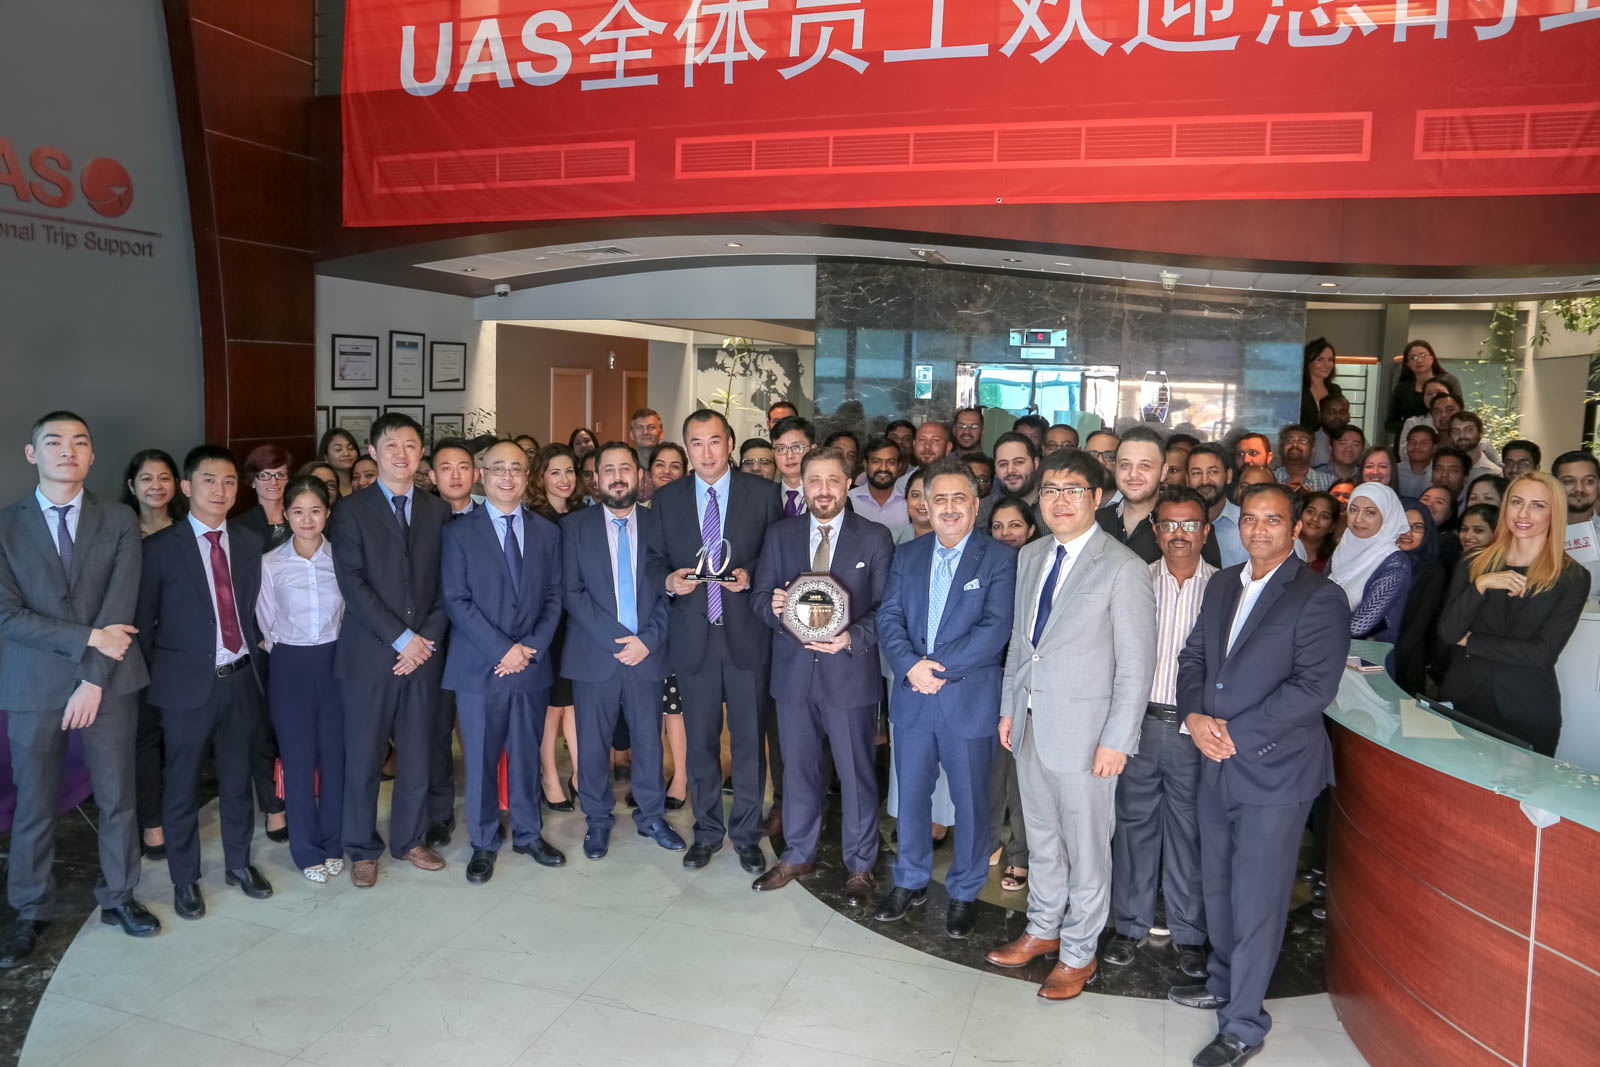 UAS And Sichuan Airlines Celebrate A Decade Of Successful Partnership